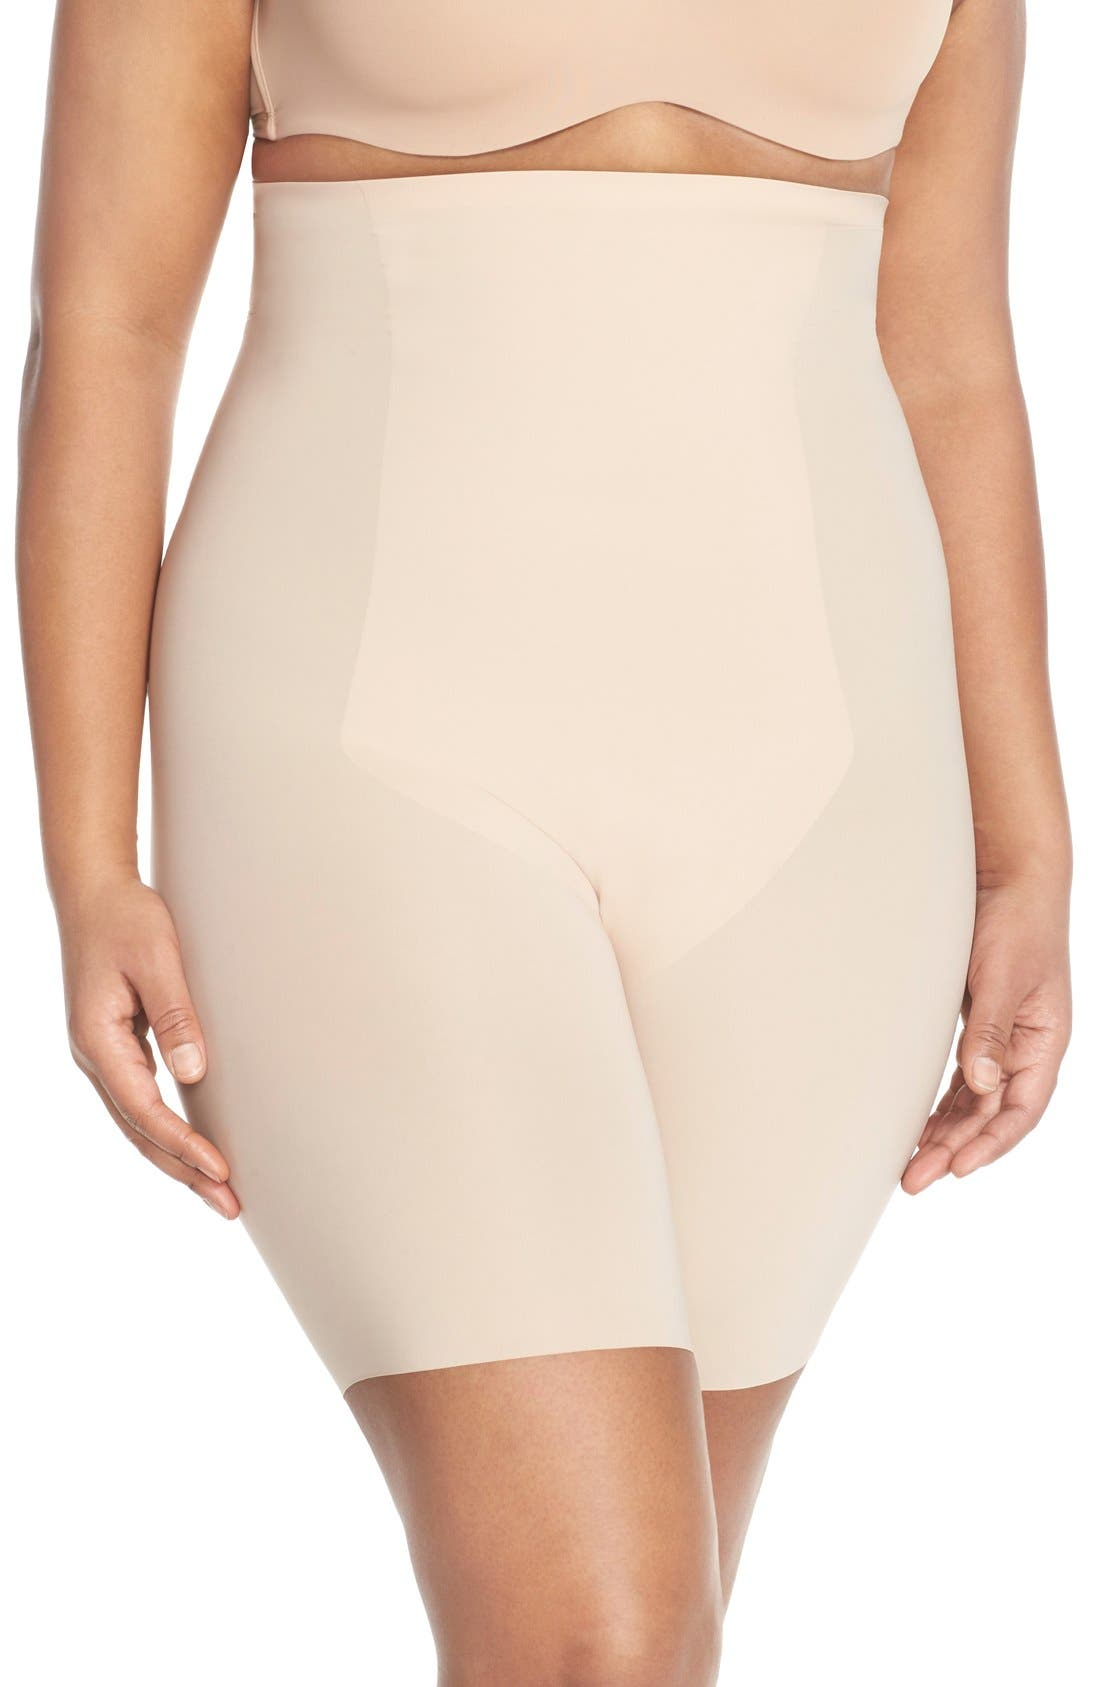 Alternate Image 1 Selected - SPANX® Thinstincts™ High Waist Mid-Thigh Shorts (Plus Size)